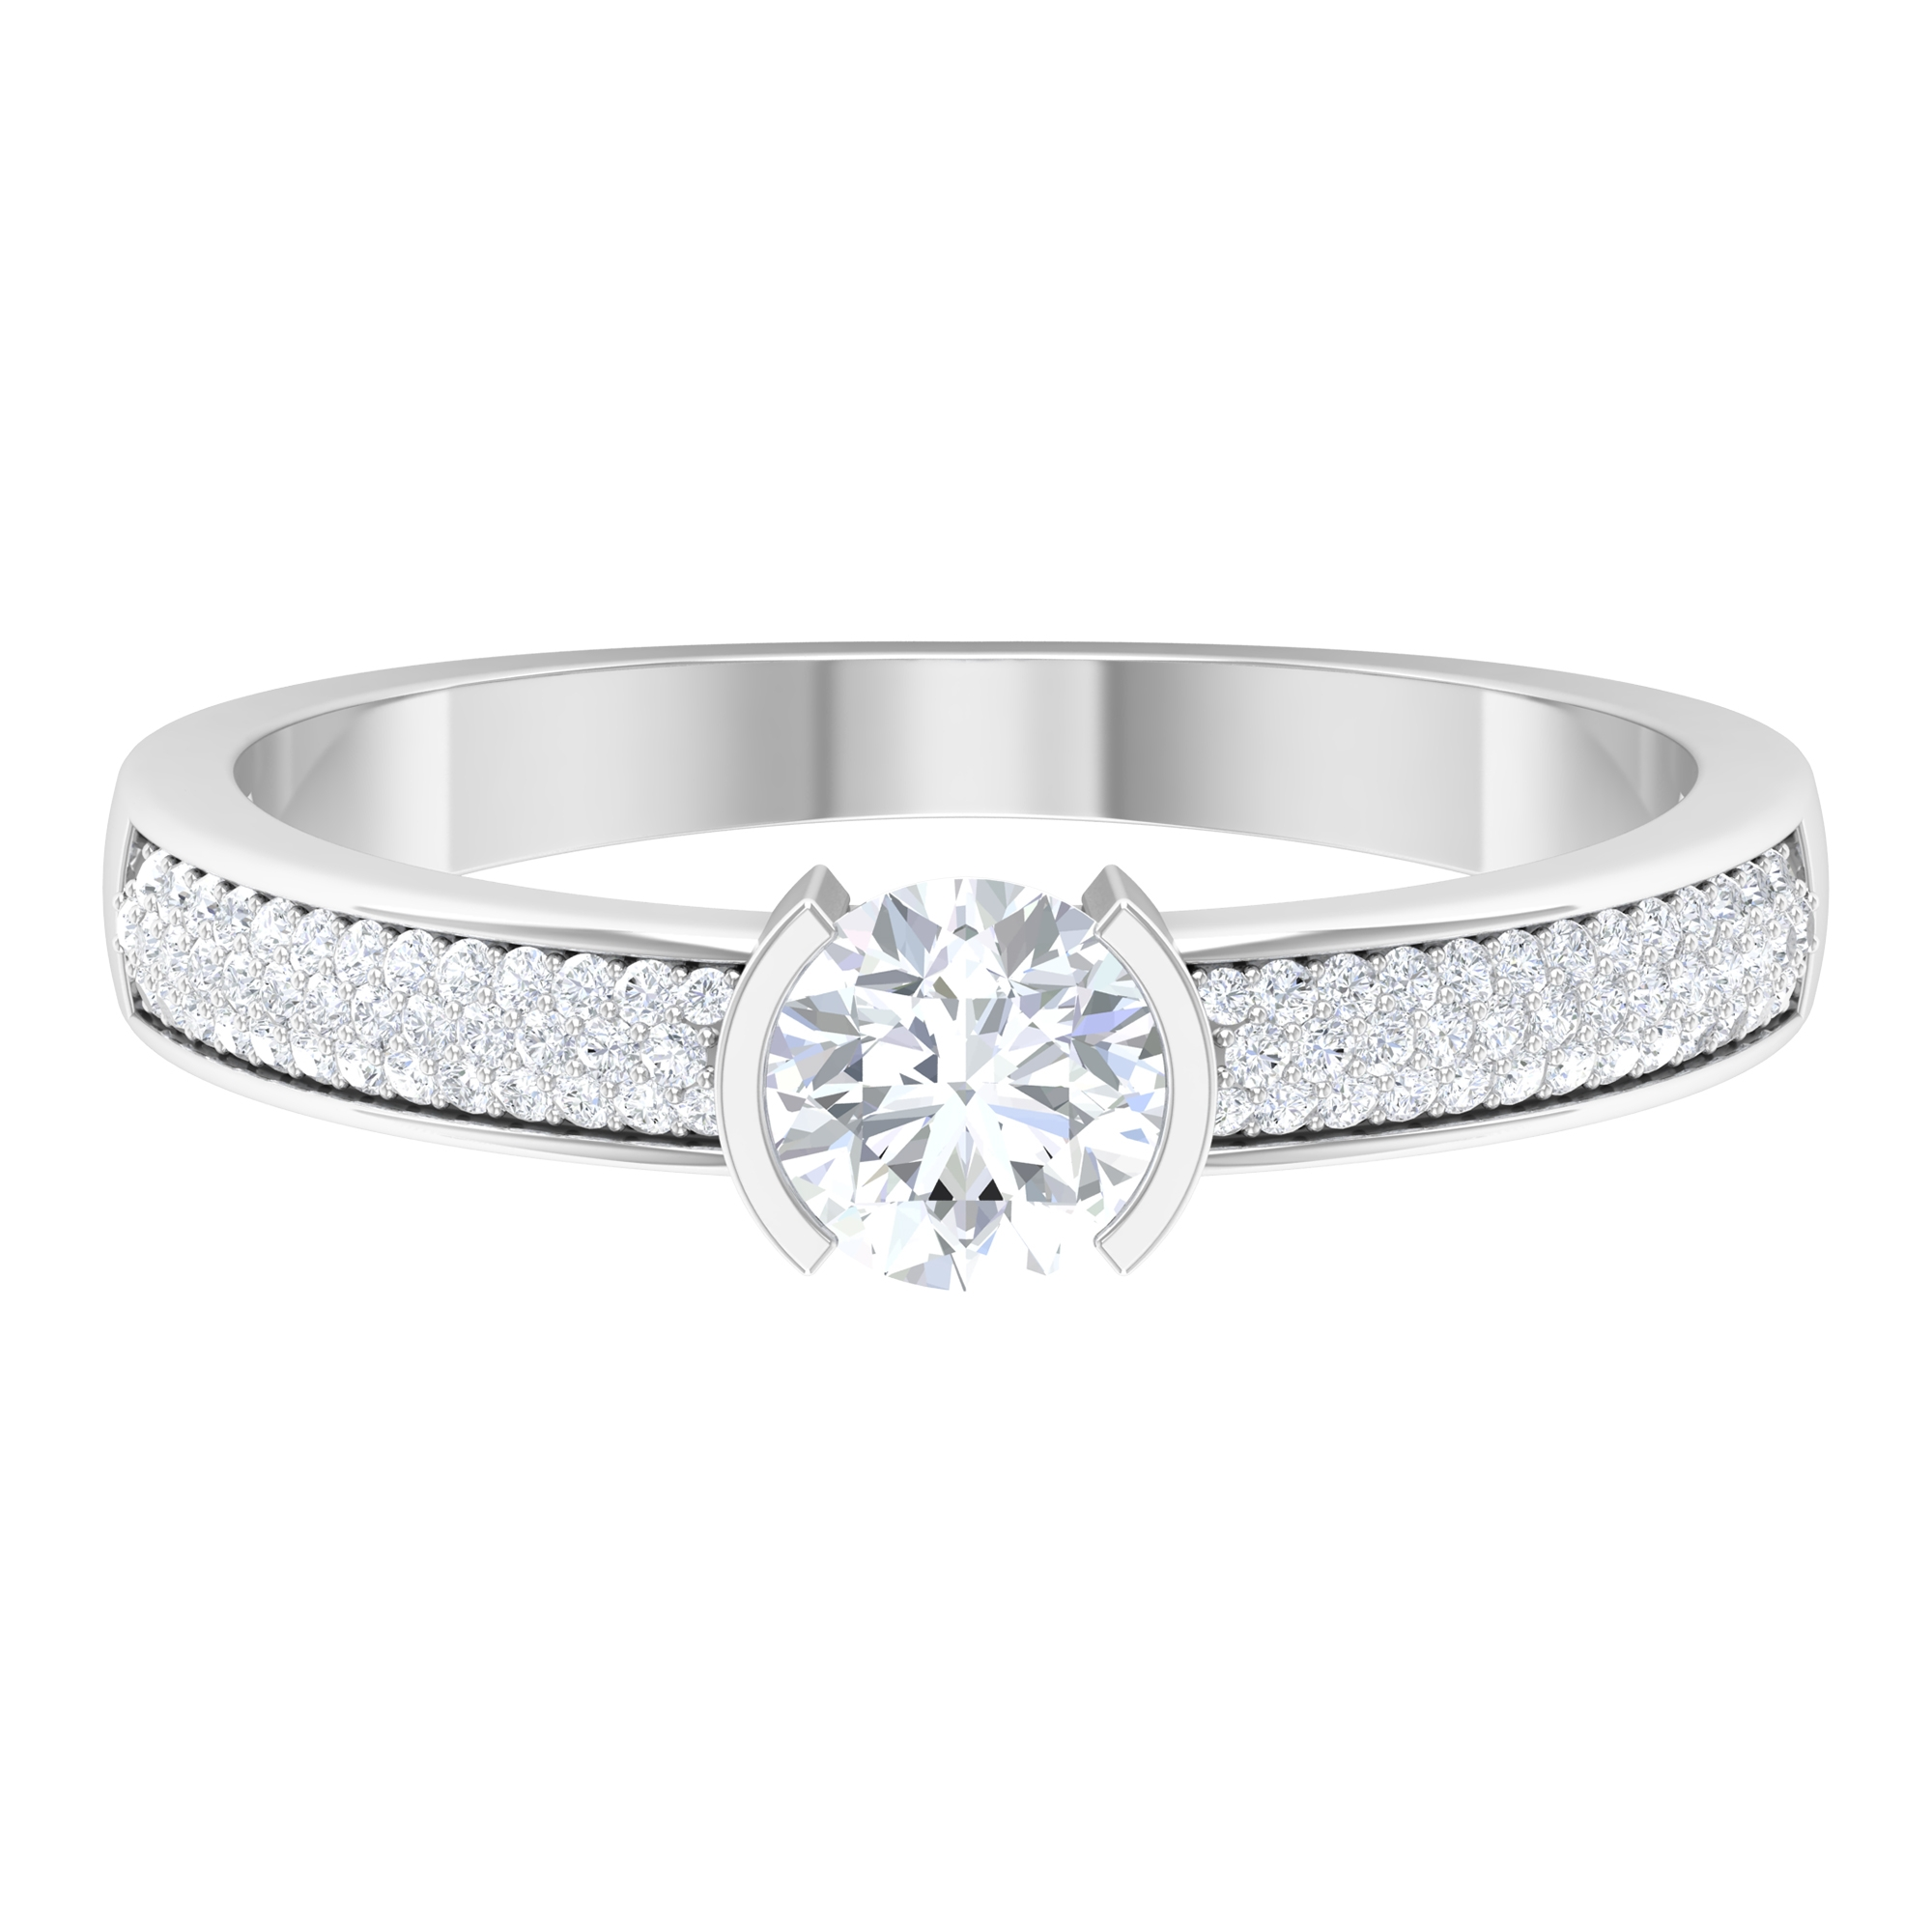 3/4 CT Half Bezel Set Solitaire Diamond Ring with Pave Setting Side Stones